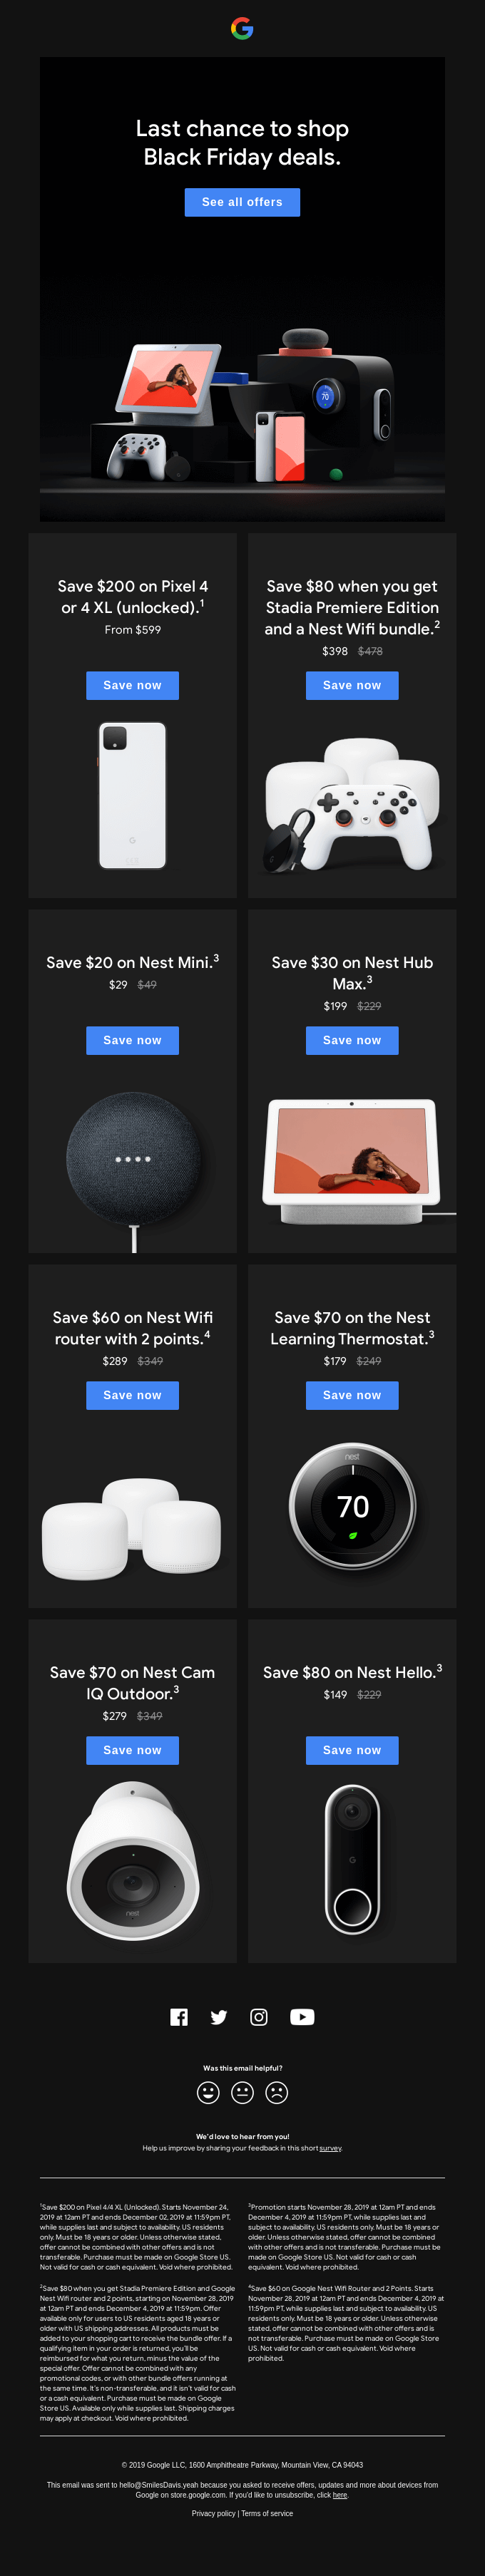 Black Friday deals are almost over.